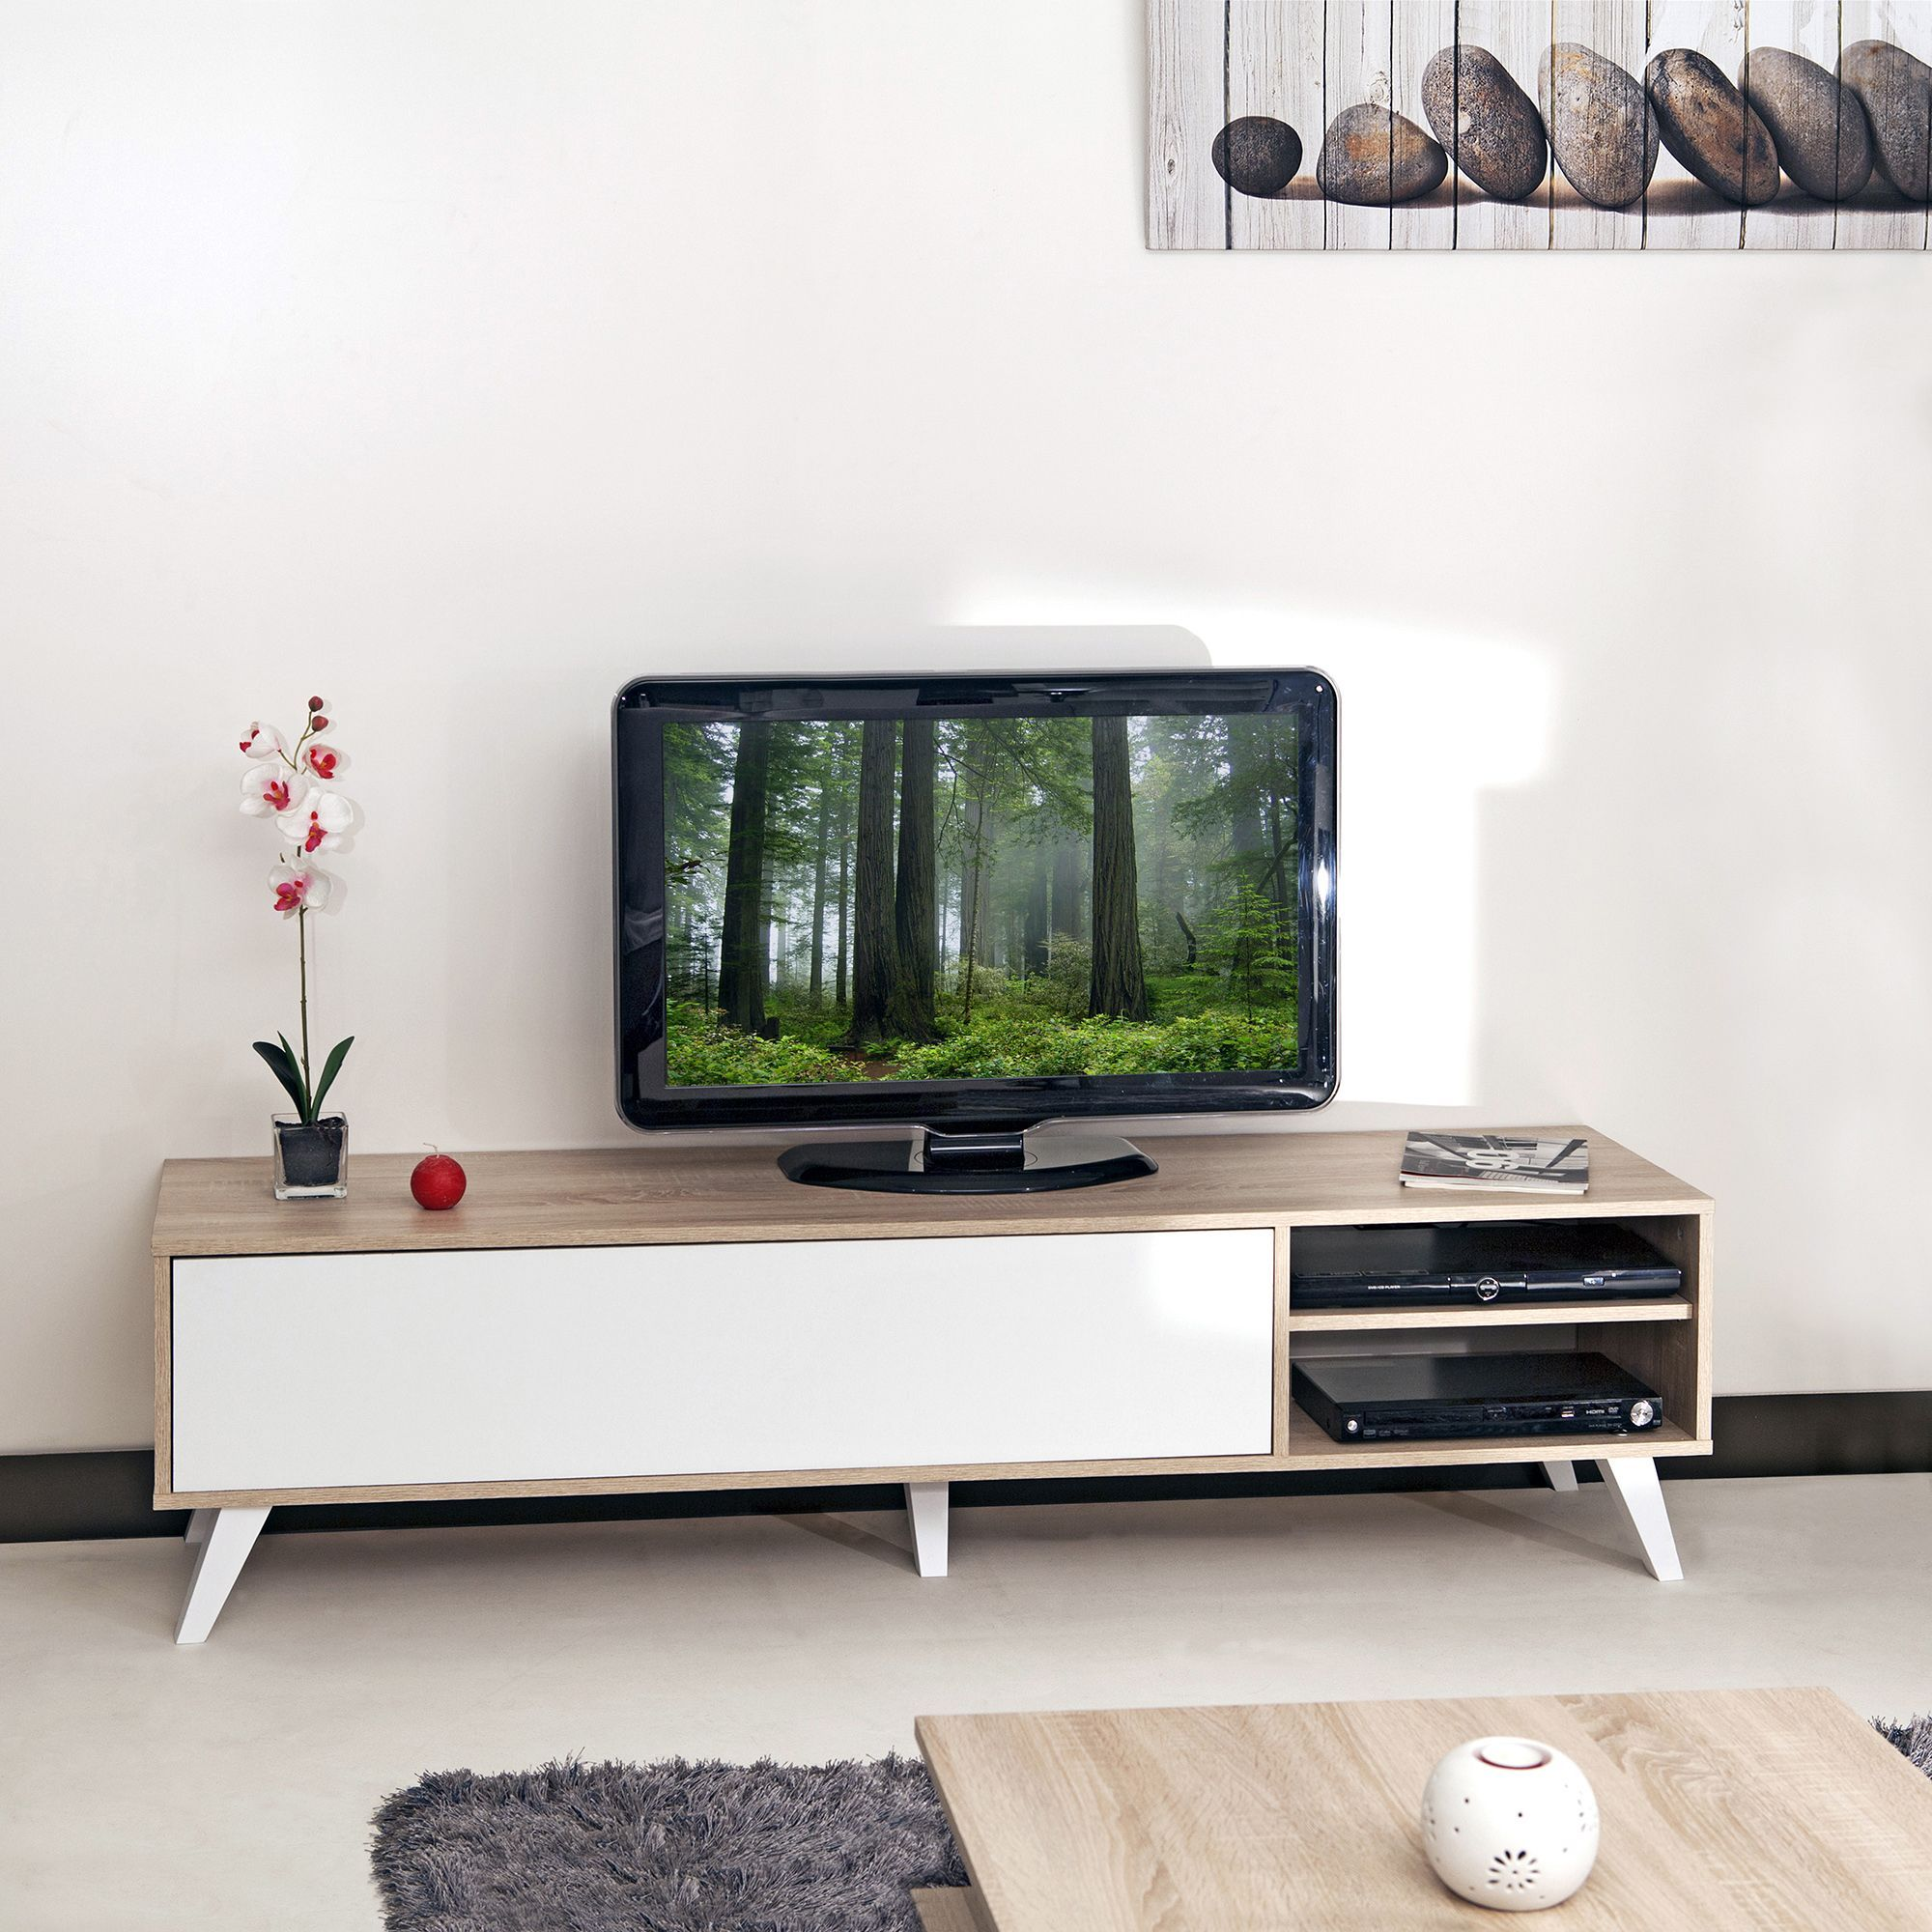 sopra meubles t l meubles accessoires tv meuble tv style scandinave coloris ch ne blanc. Black Bedroom Furniture Sets. Home Design Ideas